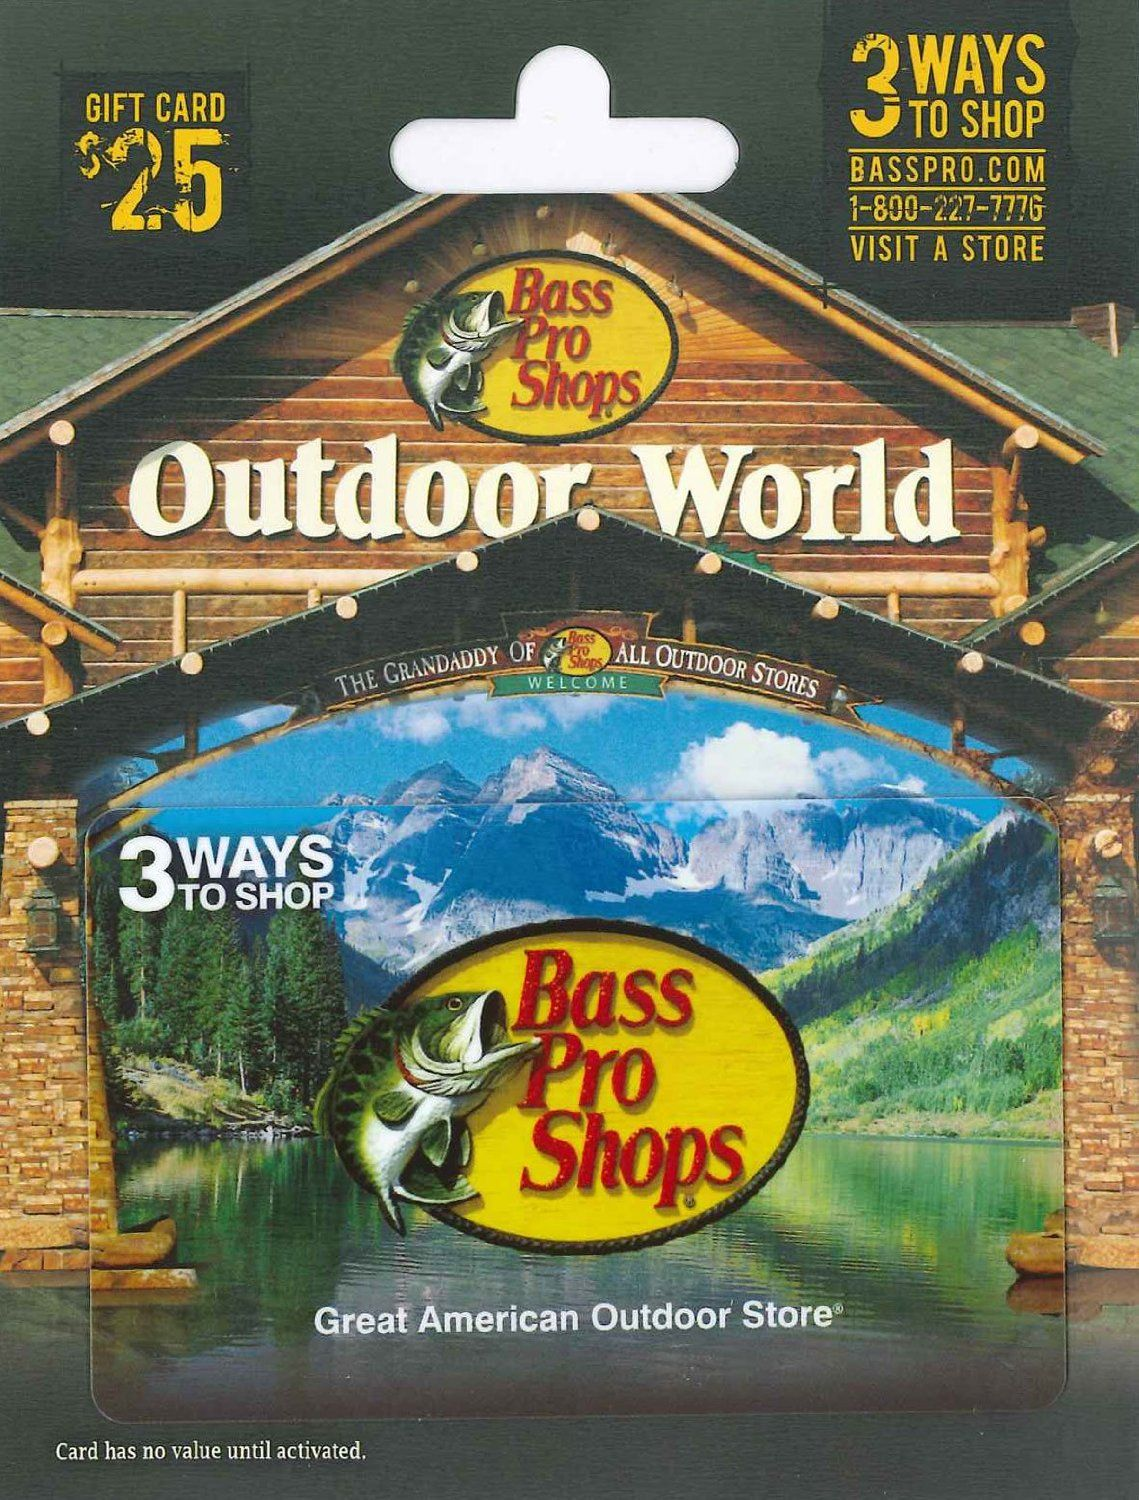 Bass pro shops gift card 25 gift cards store